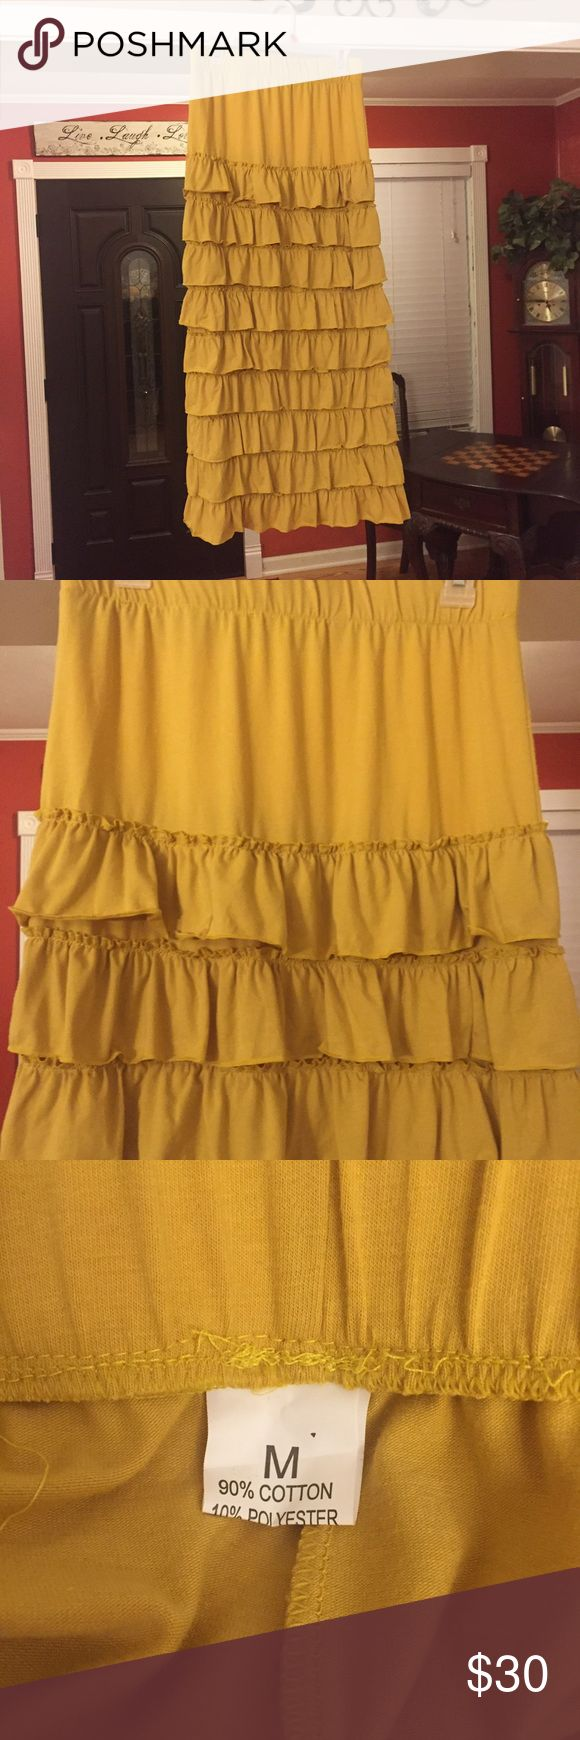 """NWOT Mustard Yellow Layered Ruffle Skirt medium NWOT Mustard Yellow Layered Ruffle Skirt Size Medium. ***Has a tiny hole in the top and the side of the top side looks like the ruffle was taken off. Not noticeable if a top is worn down to the ruffle part. It was that way when I got it in.*** Skirt is 39"""" long and waist is 15"""" flat but stretches. 90% cotton Skirts"""